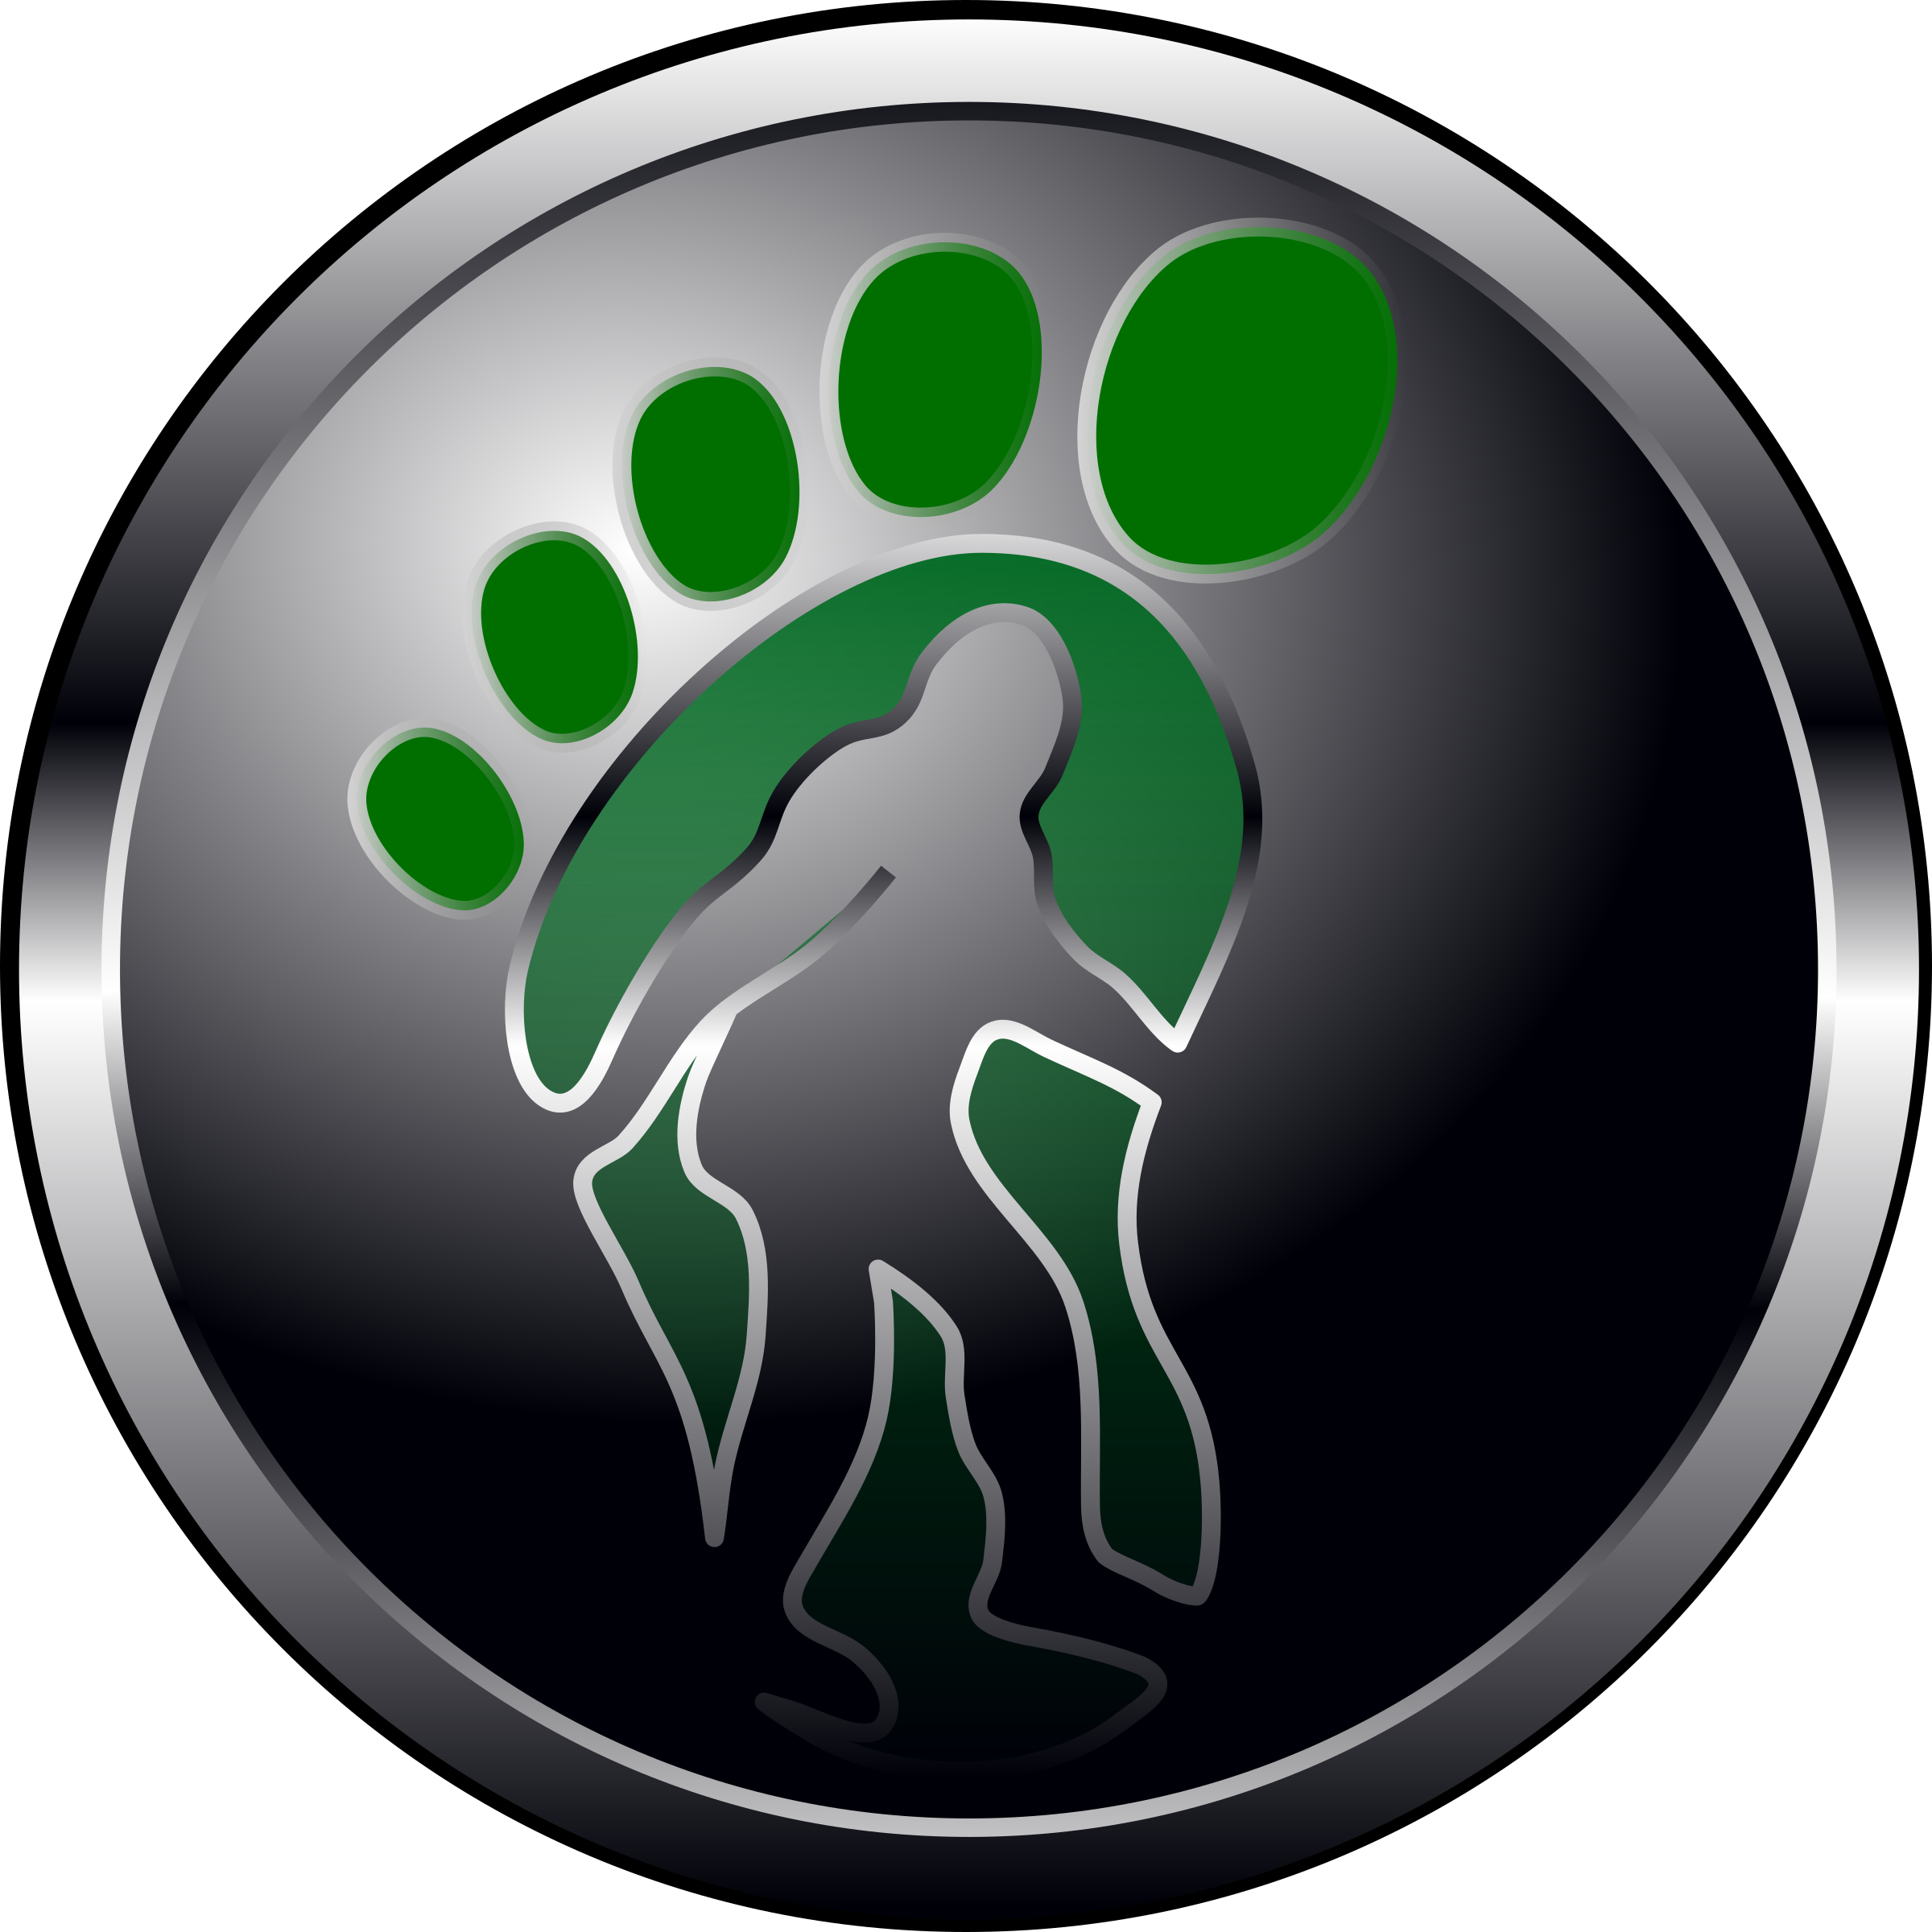 Bigfoot Button by haroldbarber73